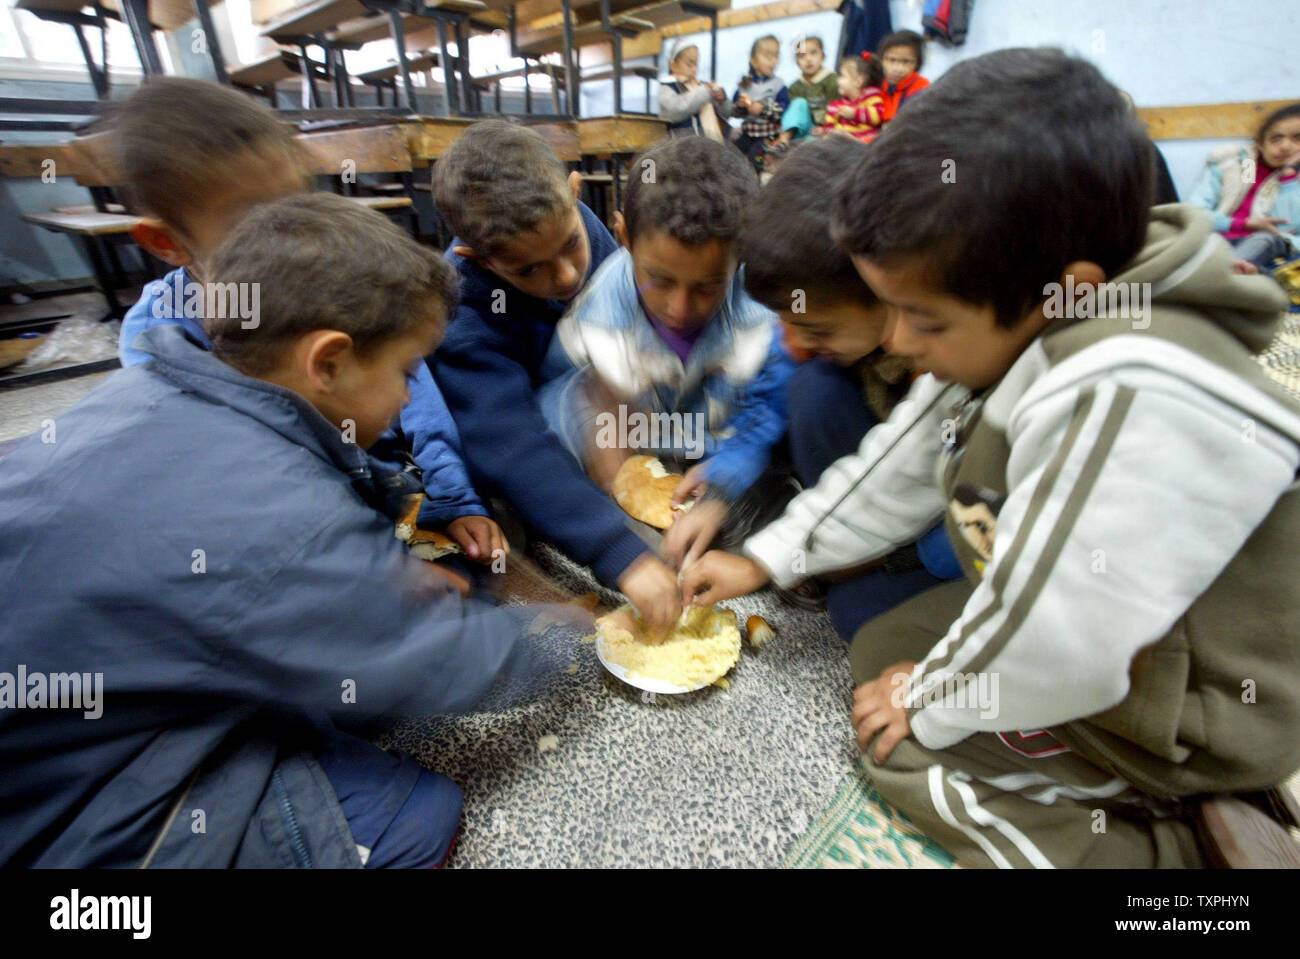 Palestinian  children eat inside a UN school after the demolishing of their homes by Israel in the southern Gaza Strip refugee camp of Rafah on  December 18, 2004. The Palestinian death toll during a large-scale Israeli incursion in the southern Gaza Strip rose to 11, Palestinian medical sources said.  (UPI Photo /Ismael Mohamad) - Stock Image